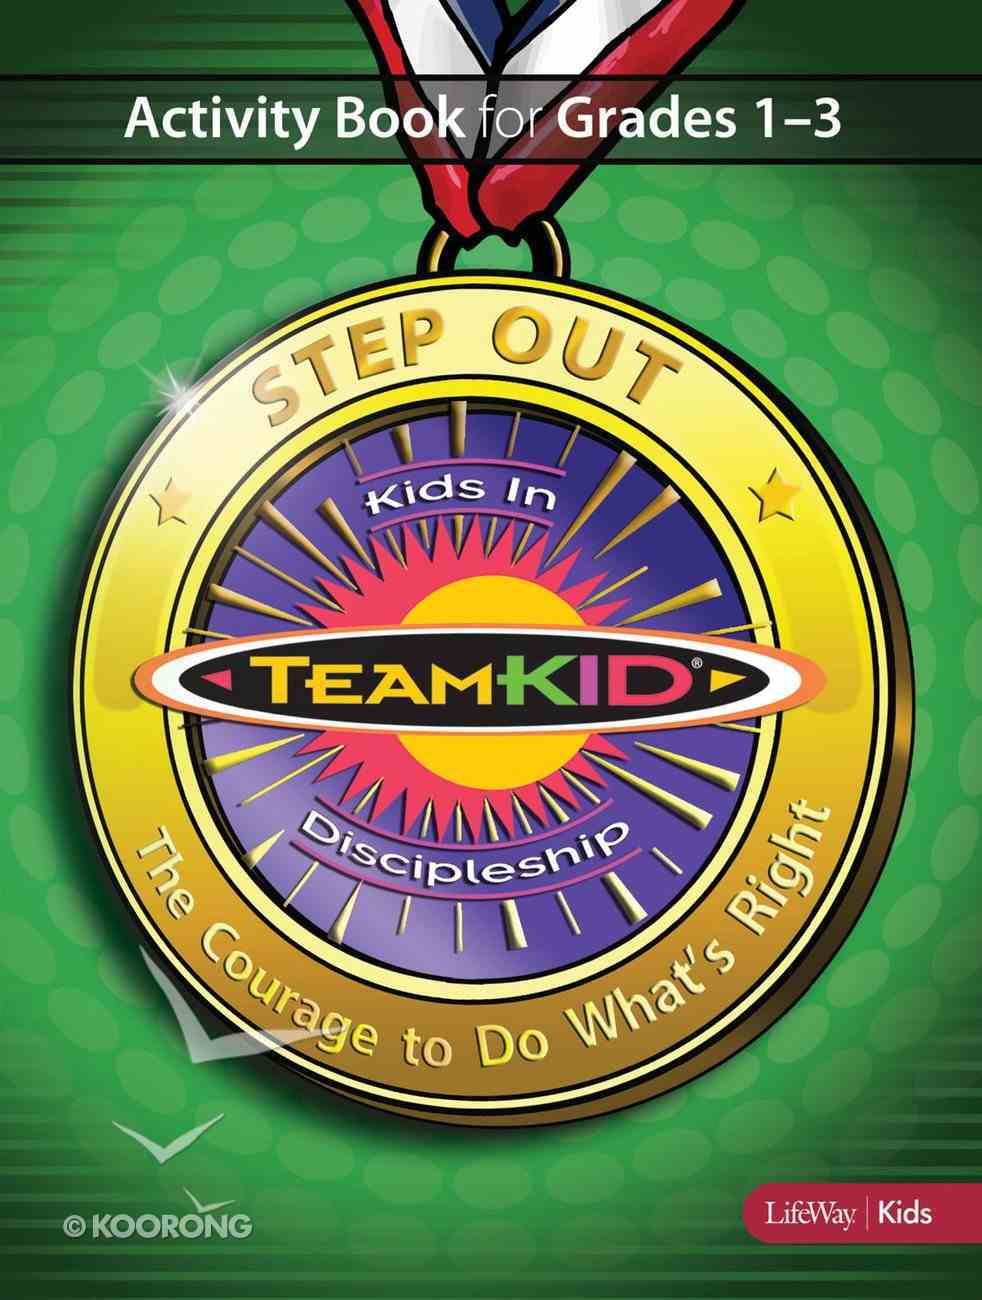 Teamkid: Step Out Grades 1-3 (Activity Book) Paperback